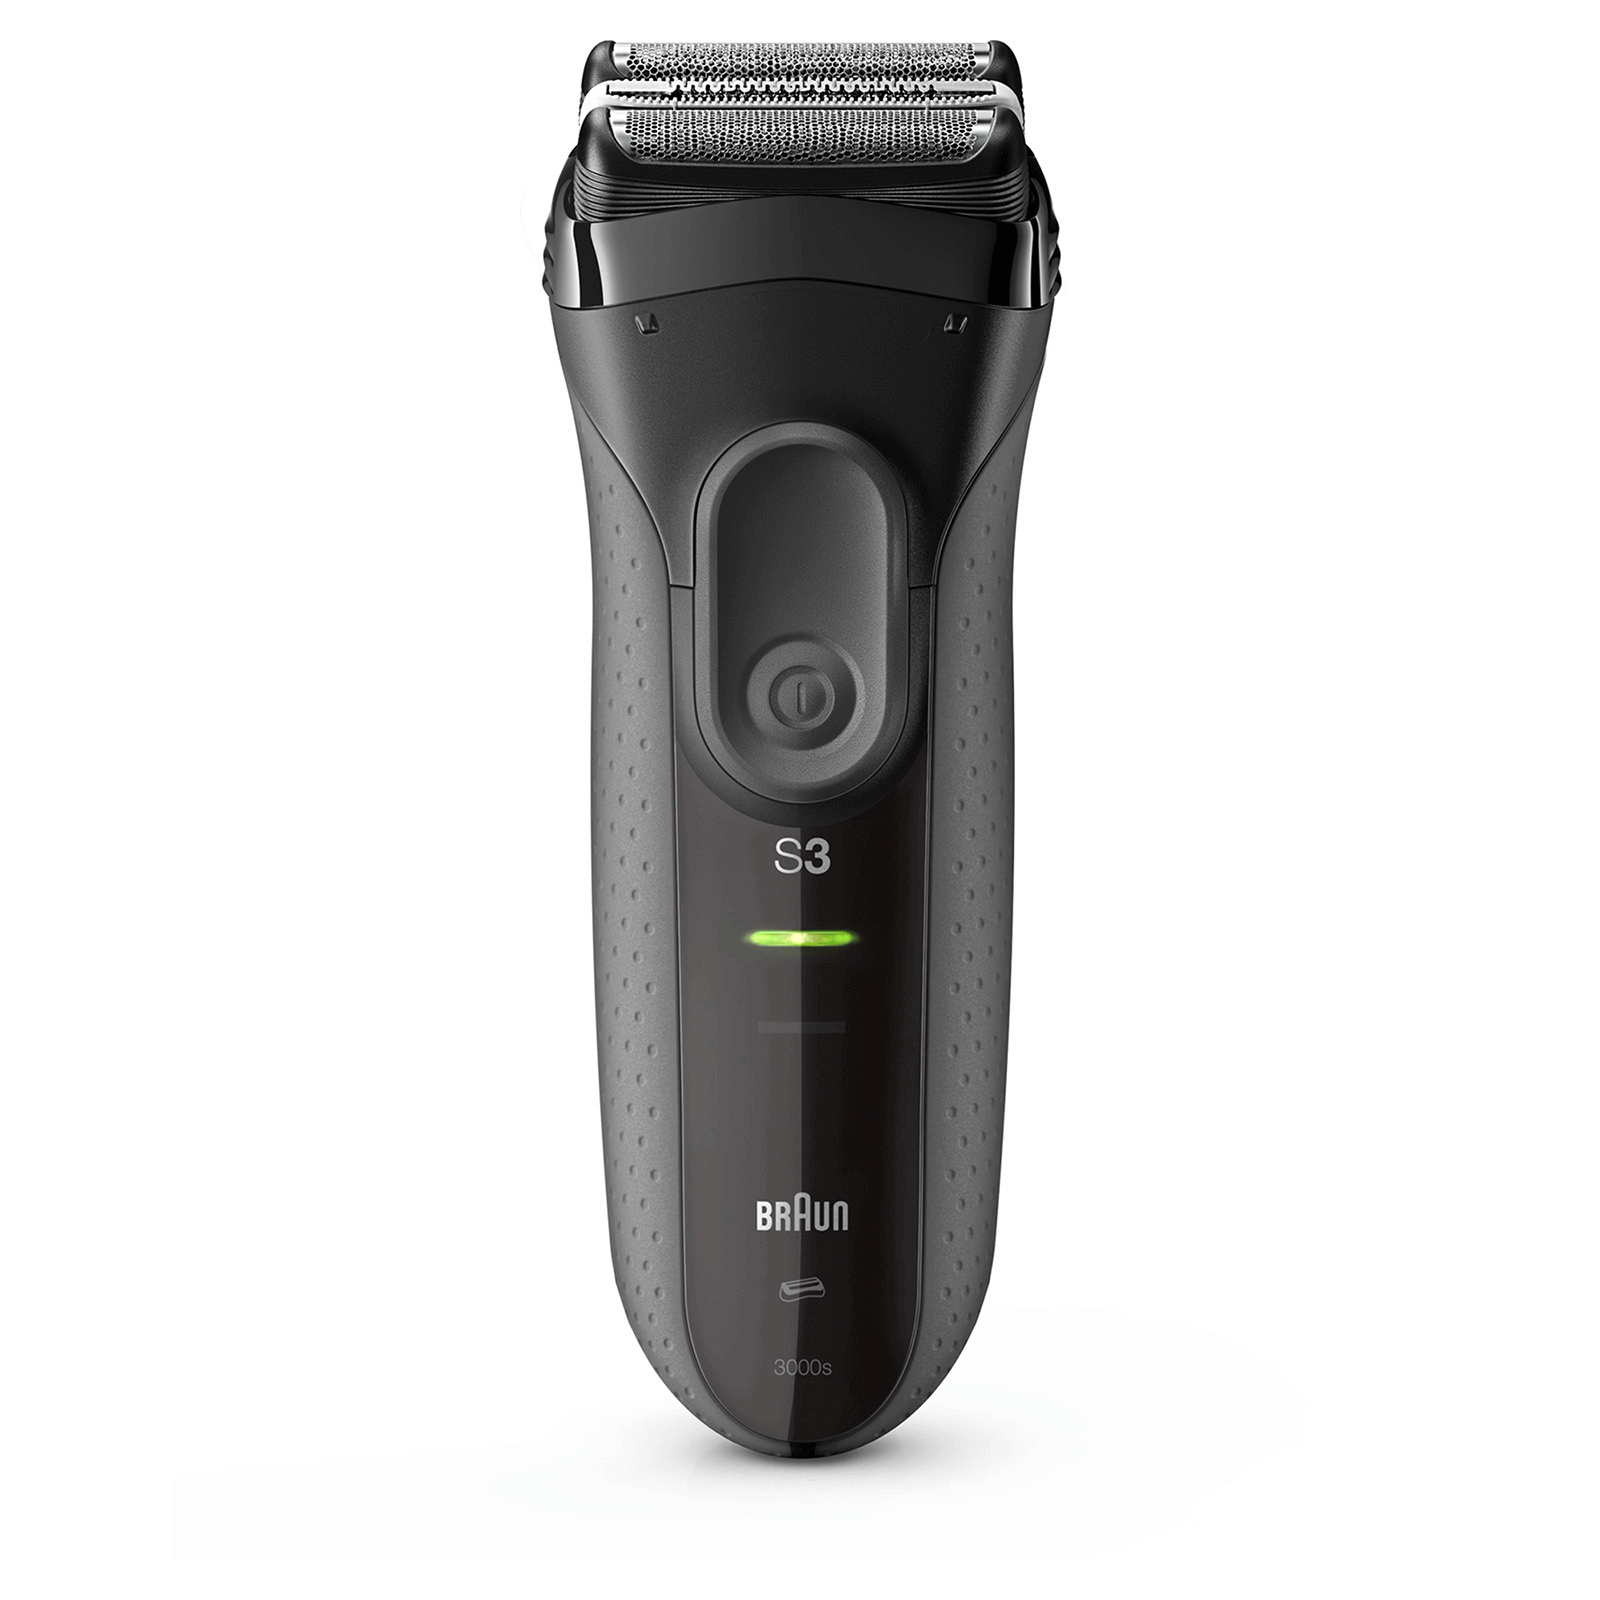 Series 3 ProSkin Shaver - Dry only